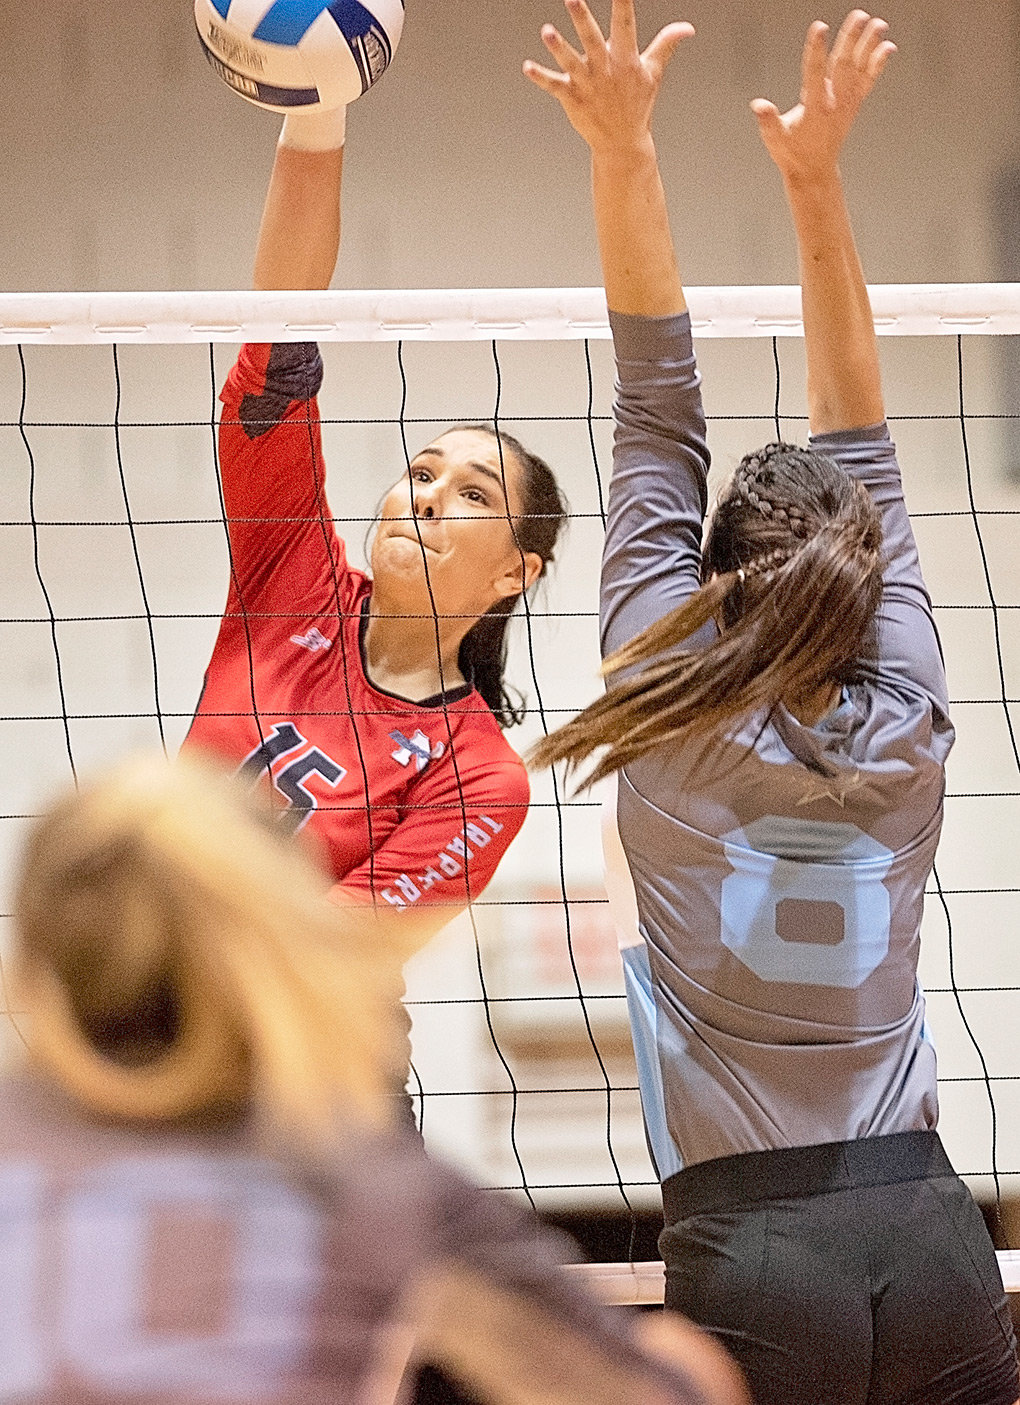 Lady Trapper outside hitter Eirini Matsouka goes up for a kill against Sheridan in a match at Cabre Gym earlier this season. Matsouka had 11 kills and 10 digs in a win over Western Wyoming Saturday in Rock Springs.